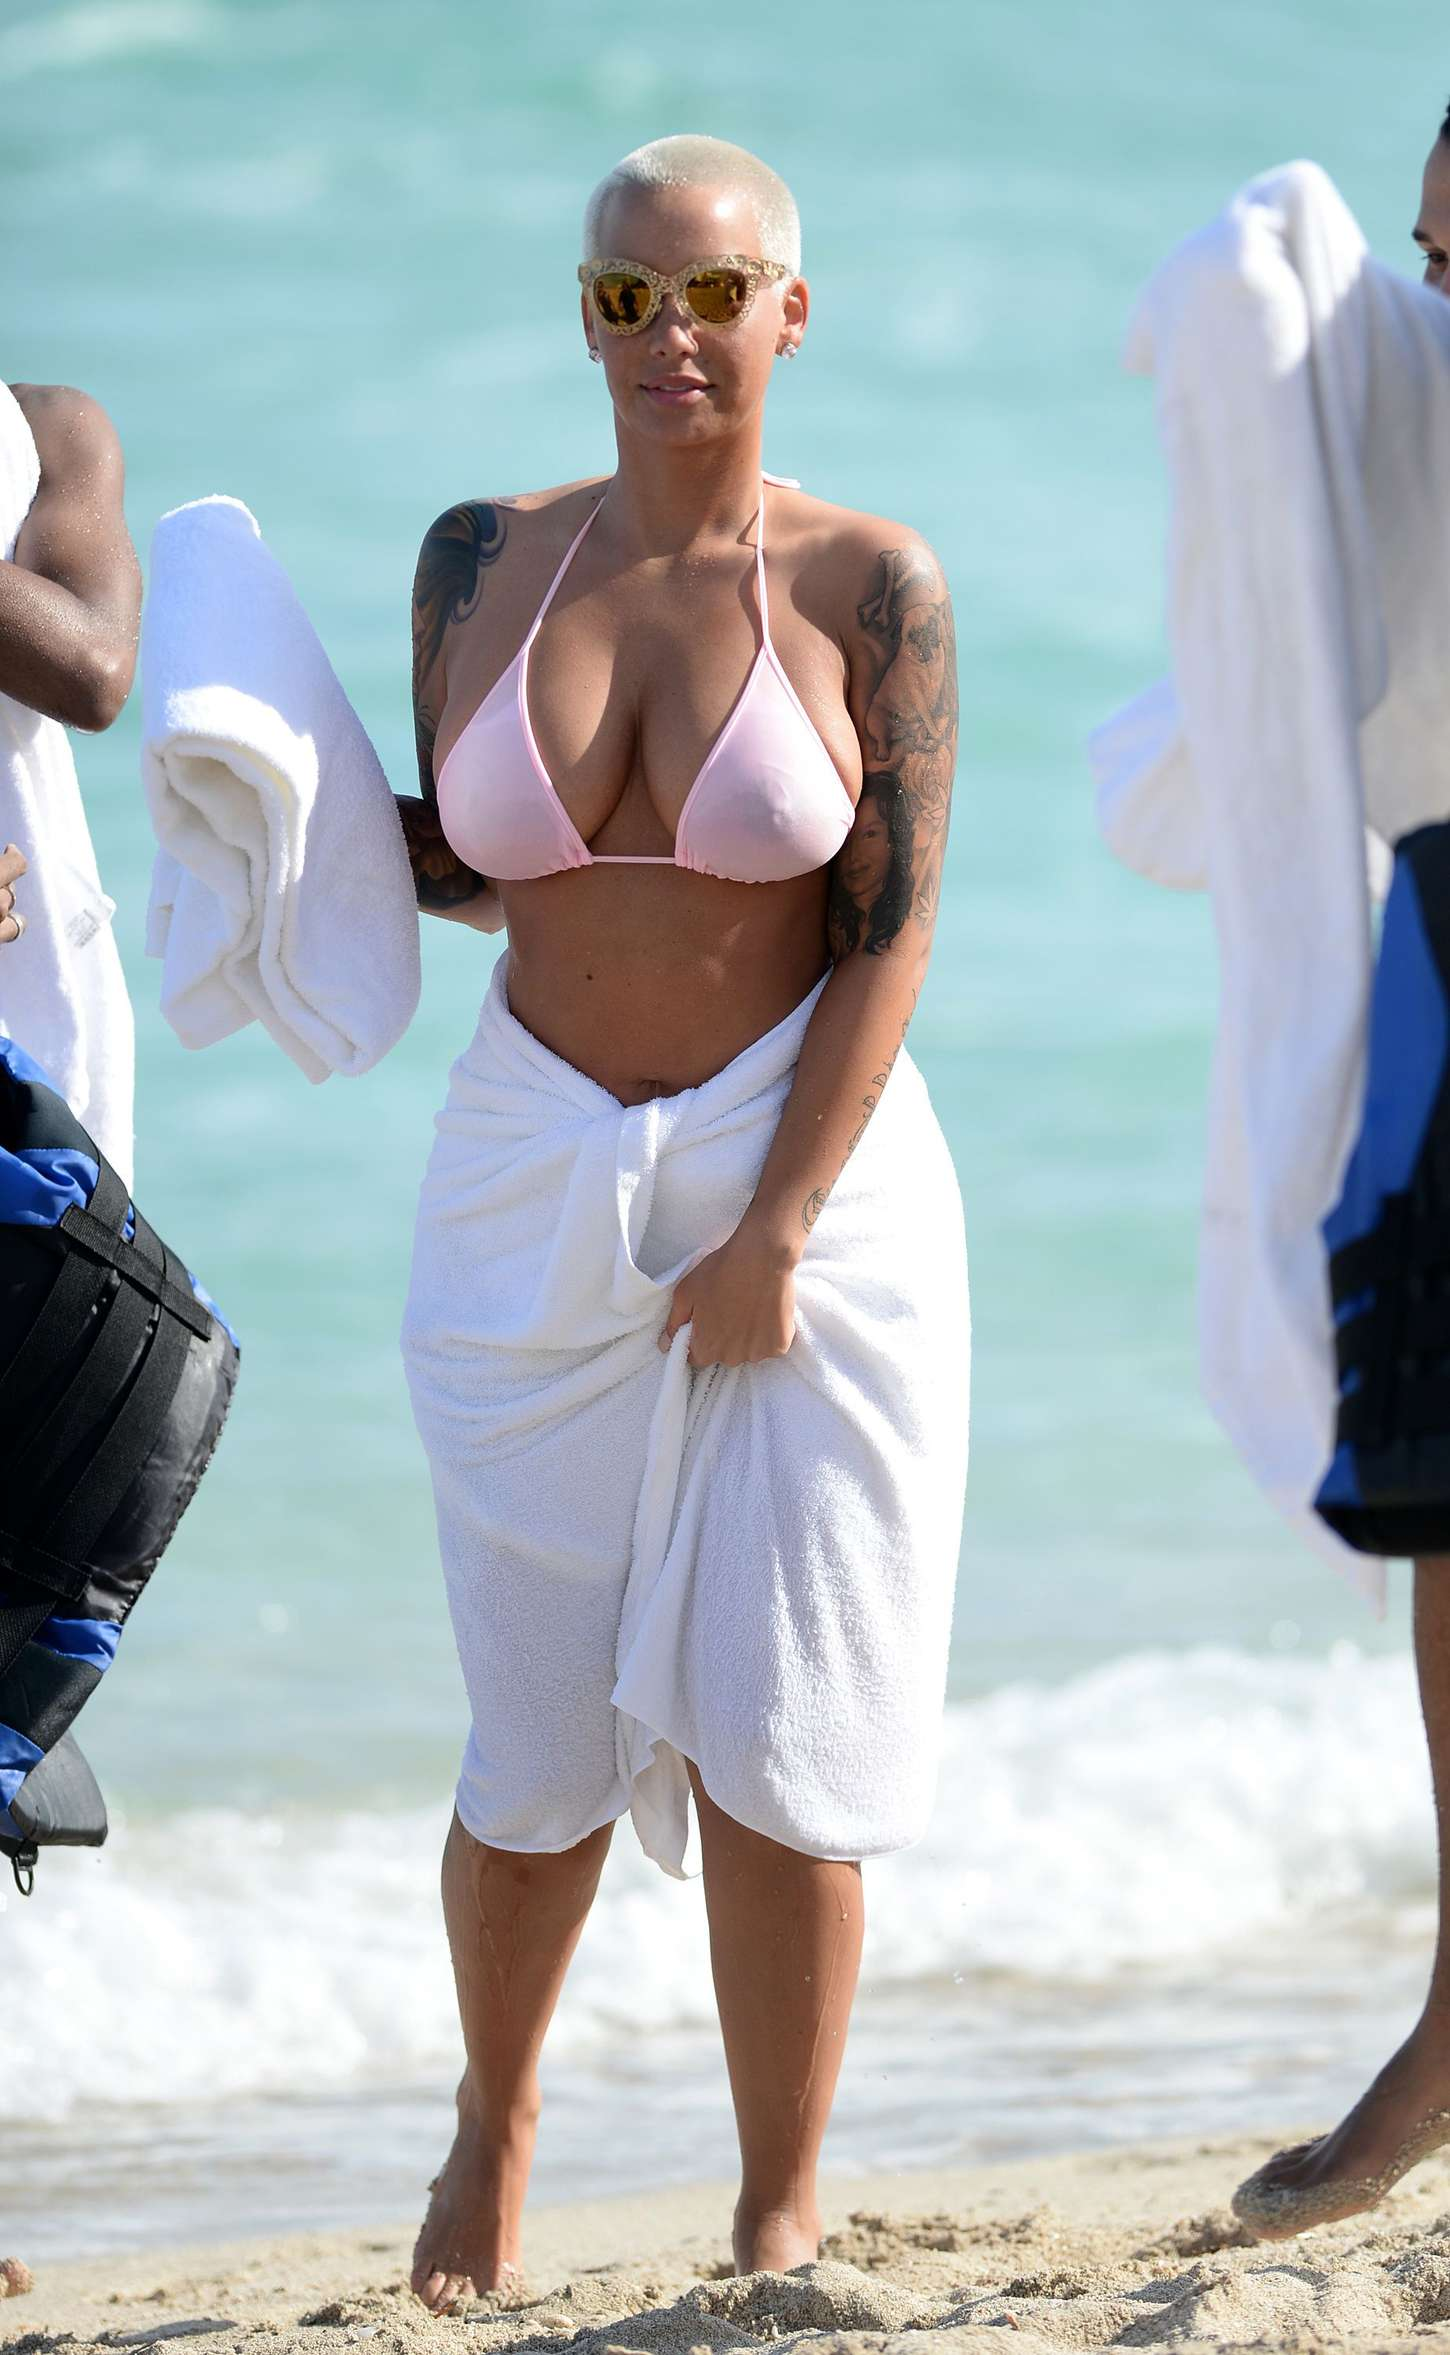 Bikini Amber Rose nudes (91 foto and video), Tits, Is a cute, Instagram, cleavage 2017